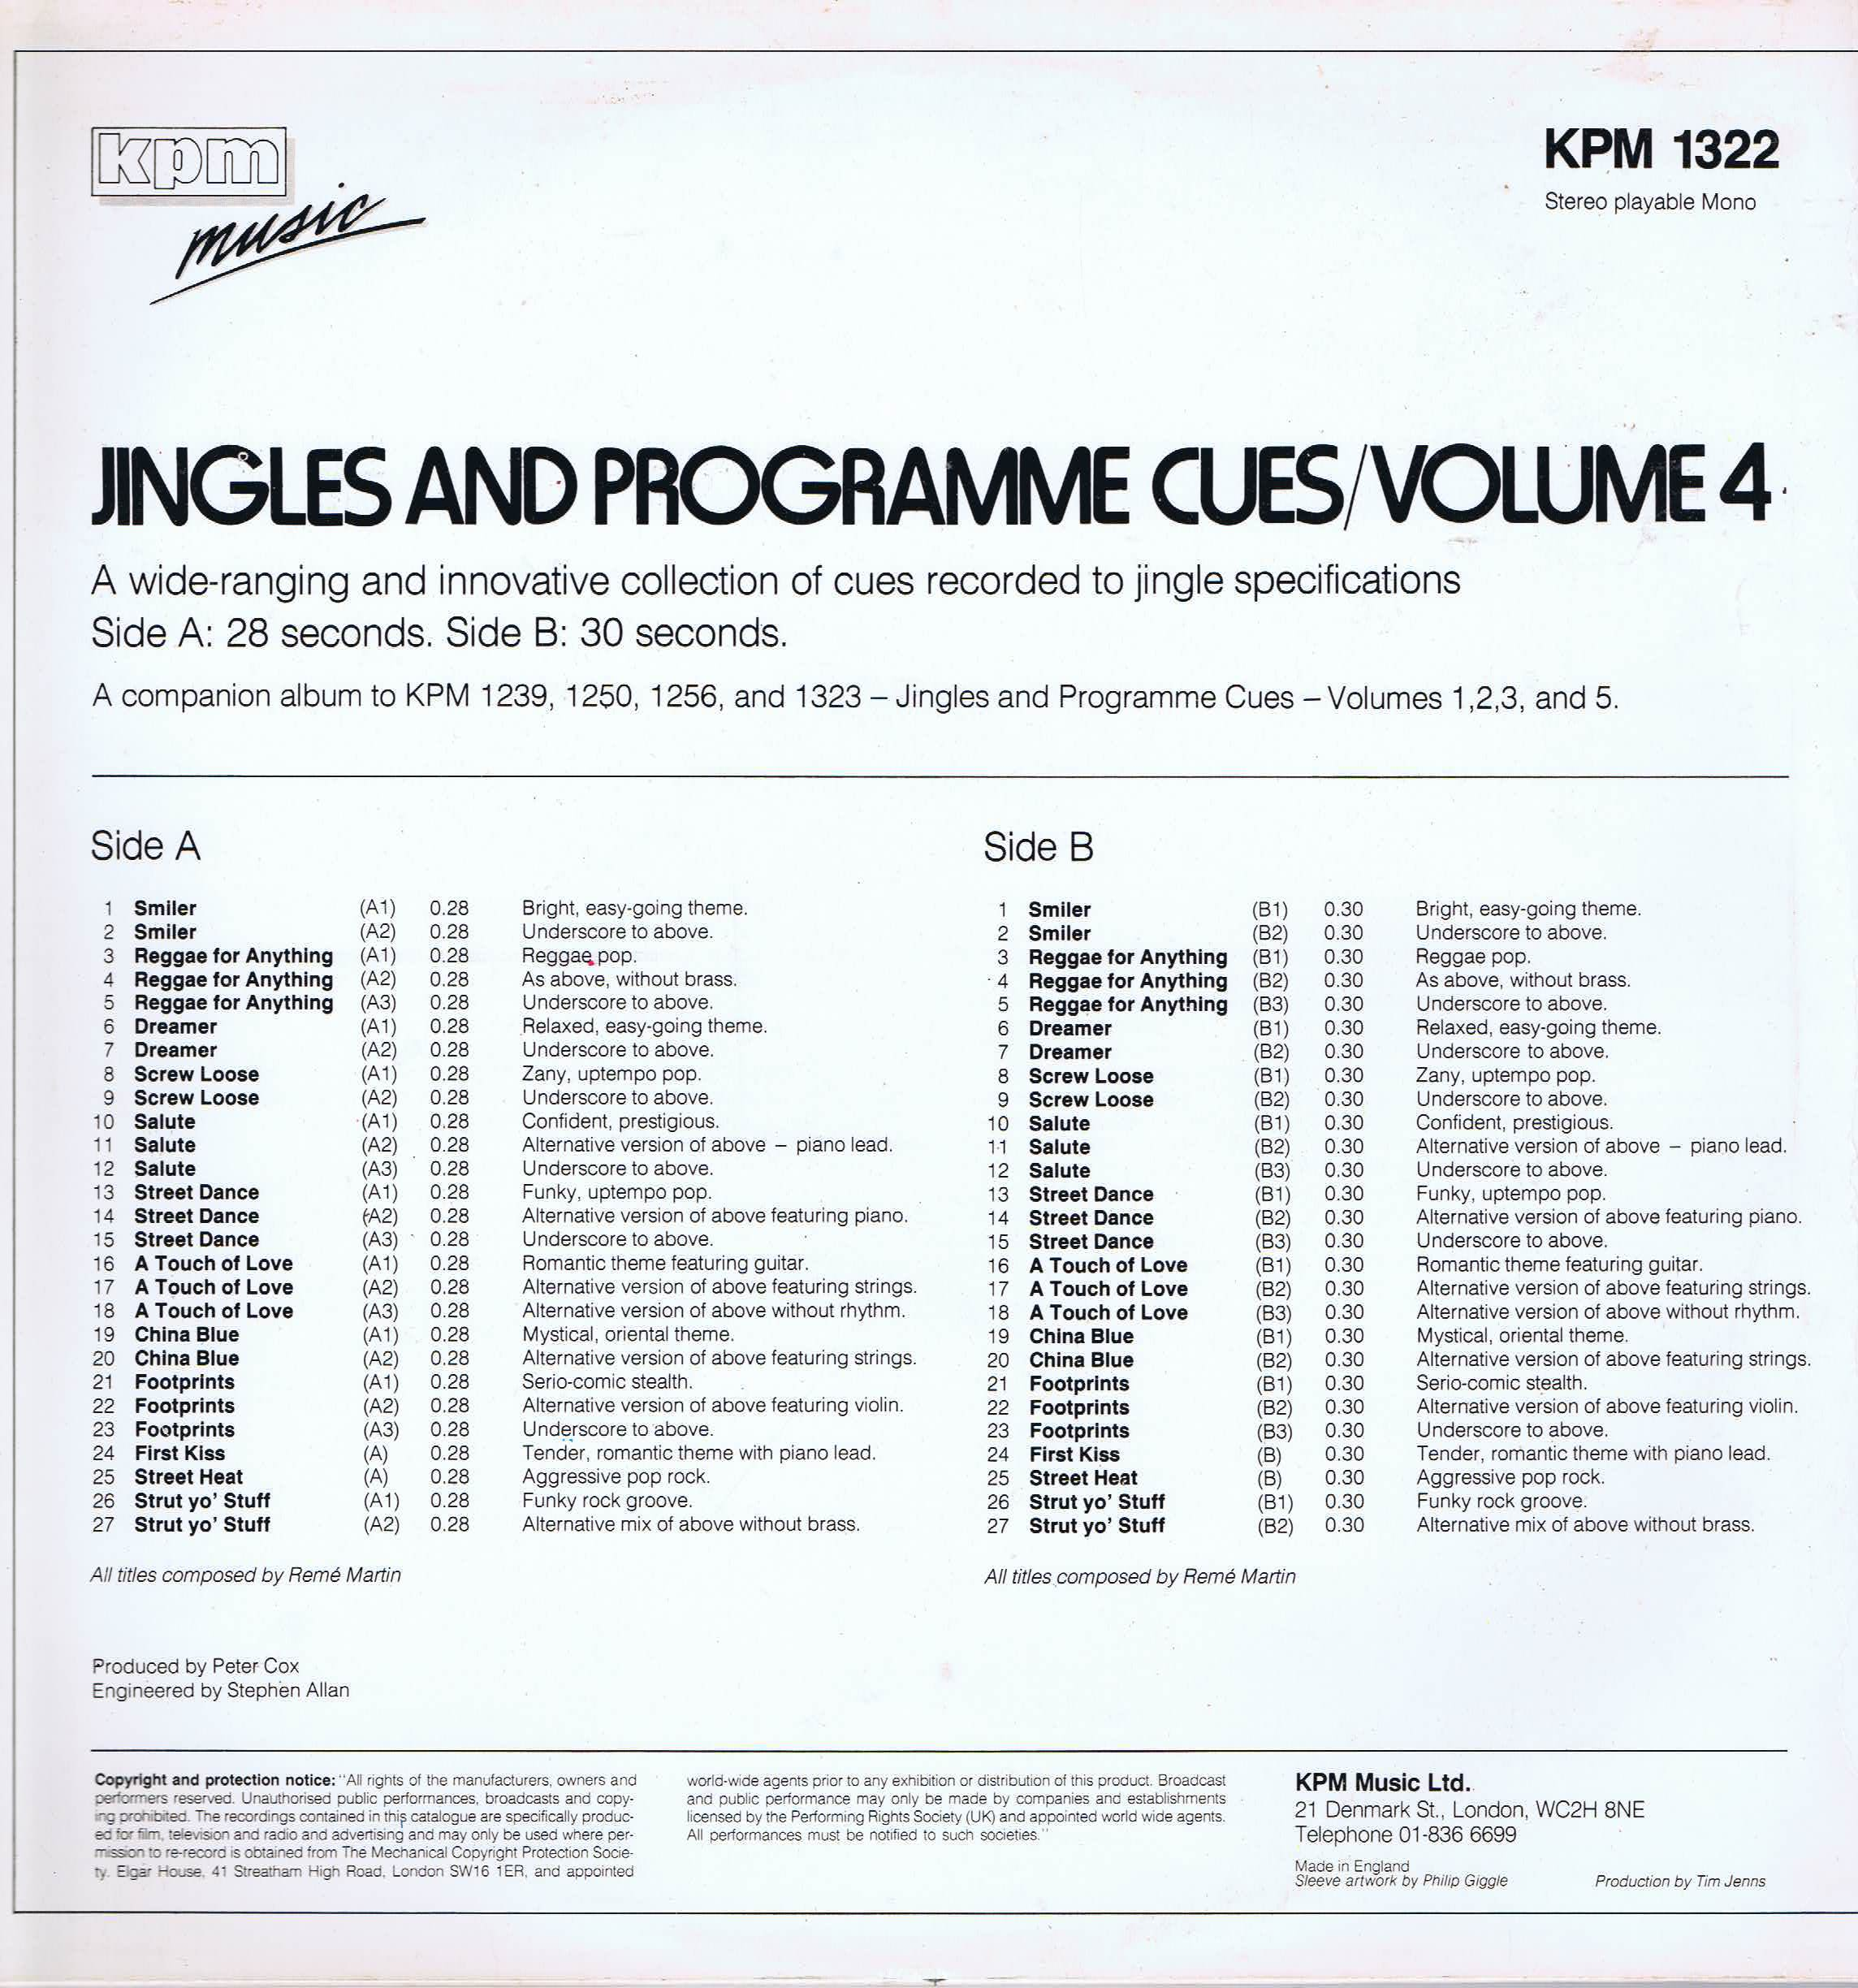 Reme Martin - Jingles And Programme Cues 4 - KPM 1322 - Library Music LP